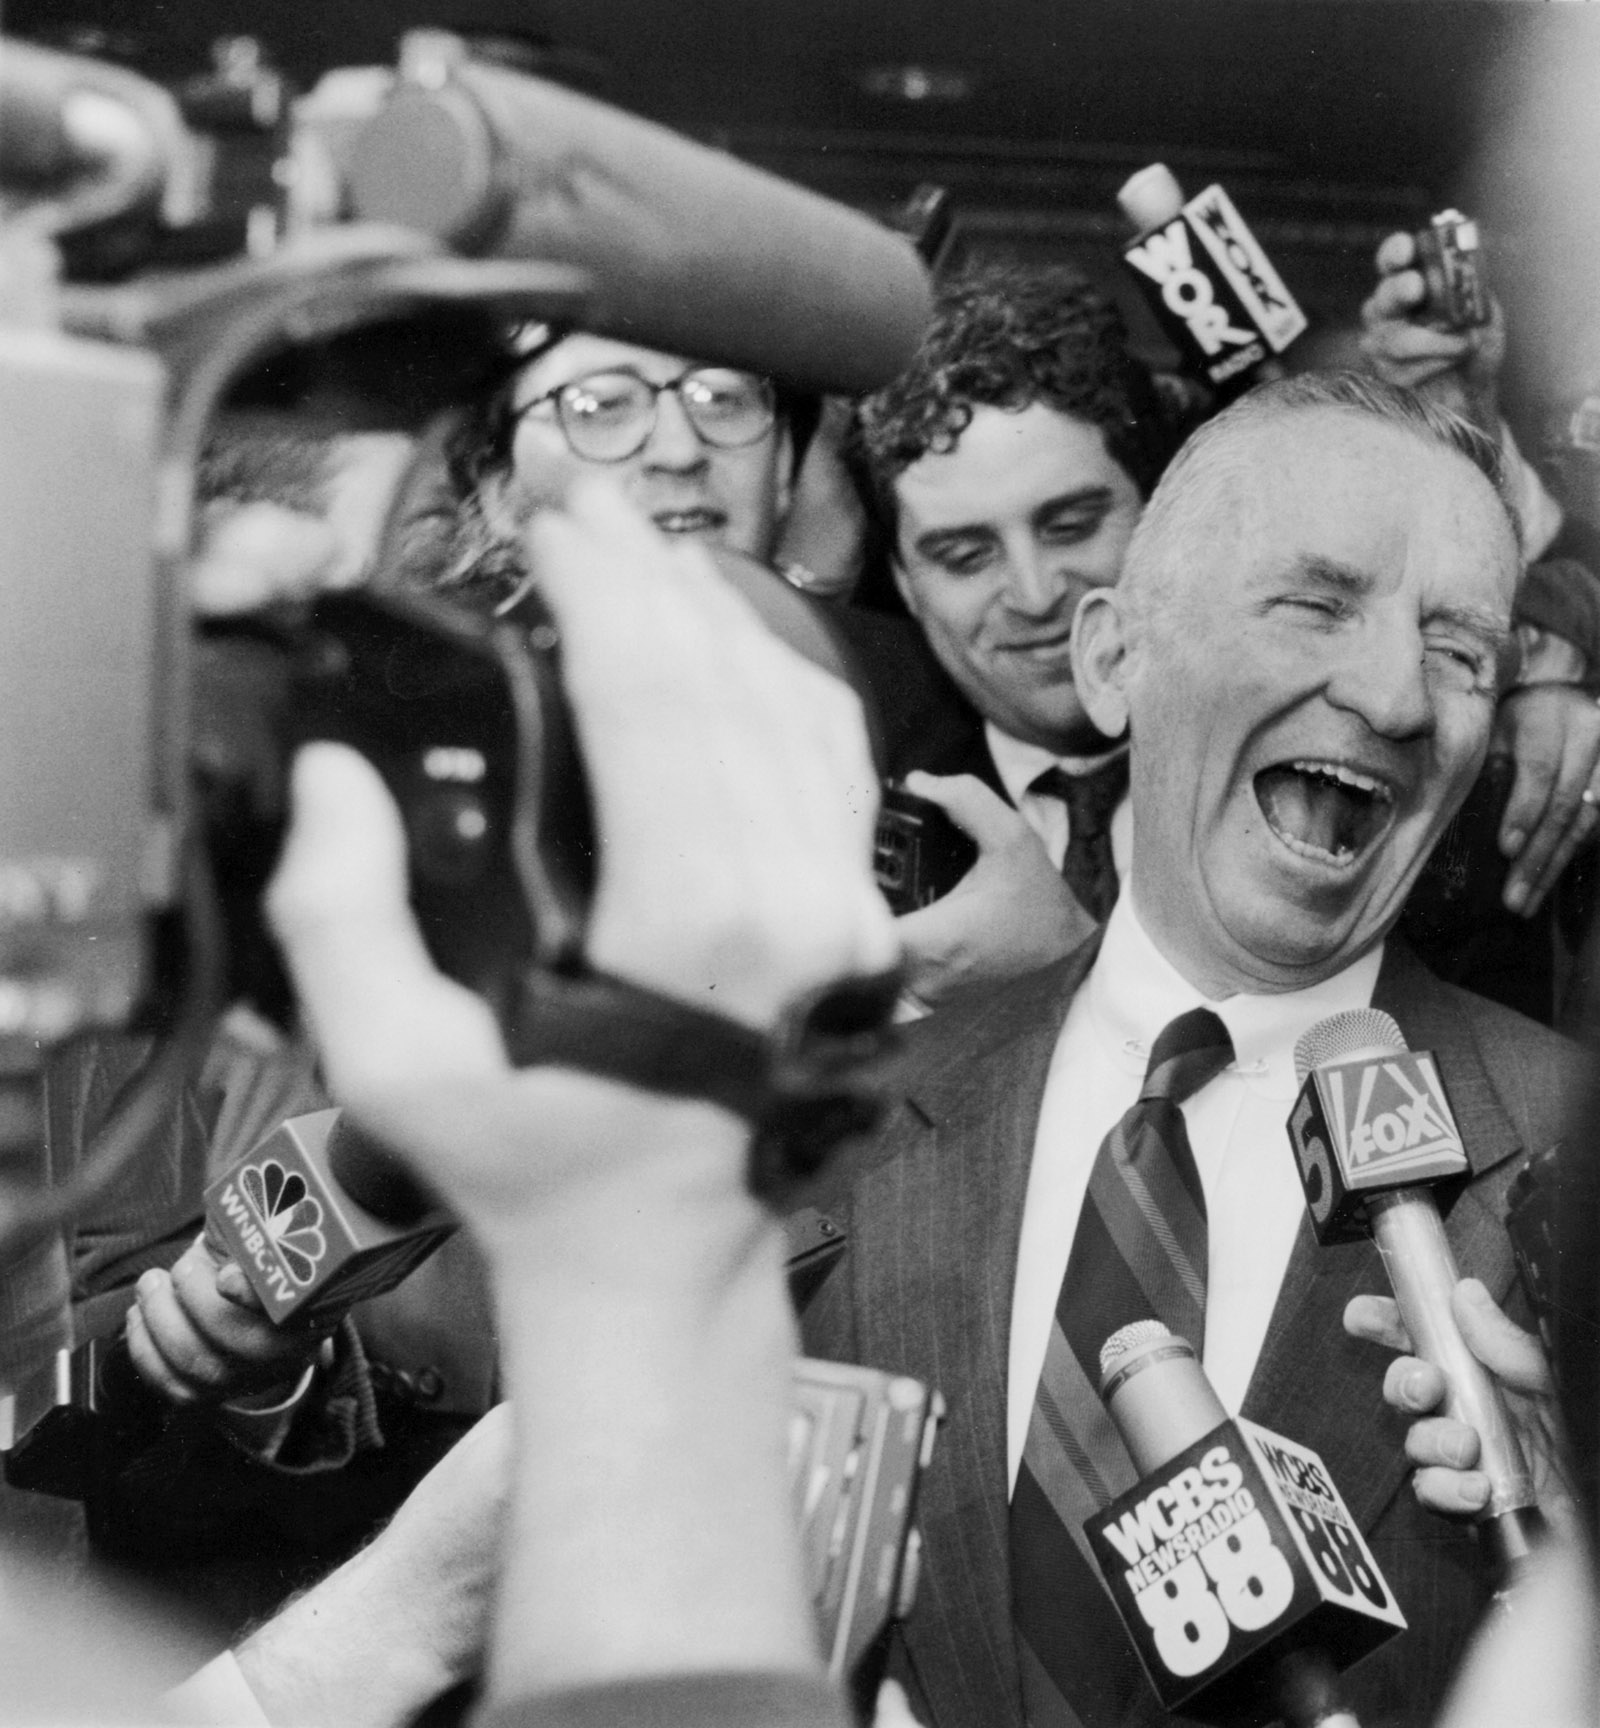 Presidential candidate Ross Perot after addressing the American Newspaper Association, New York City, 1992